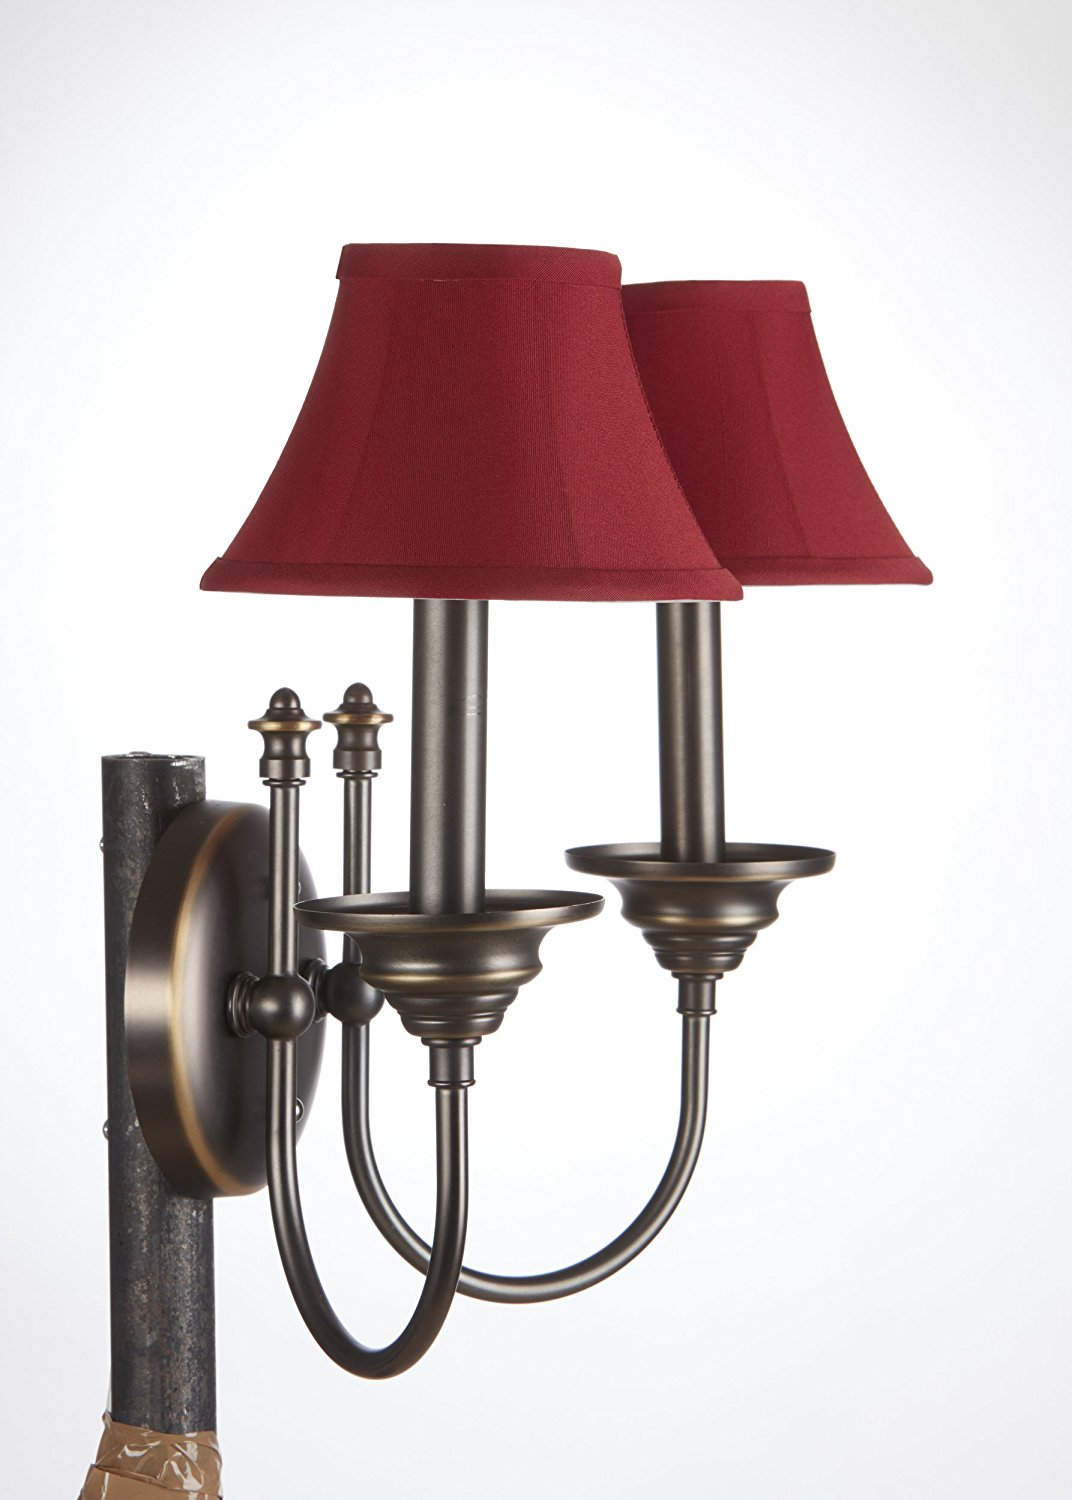 Cheap Red Clip Lamp Find Red Clip Lamp Deals On Line At Alibabacom